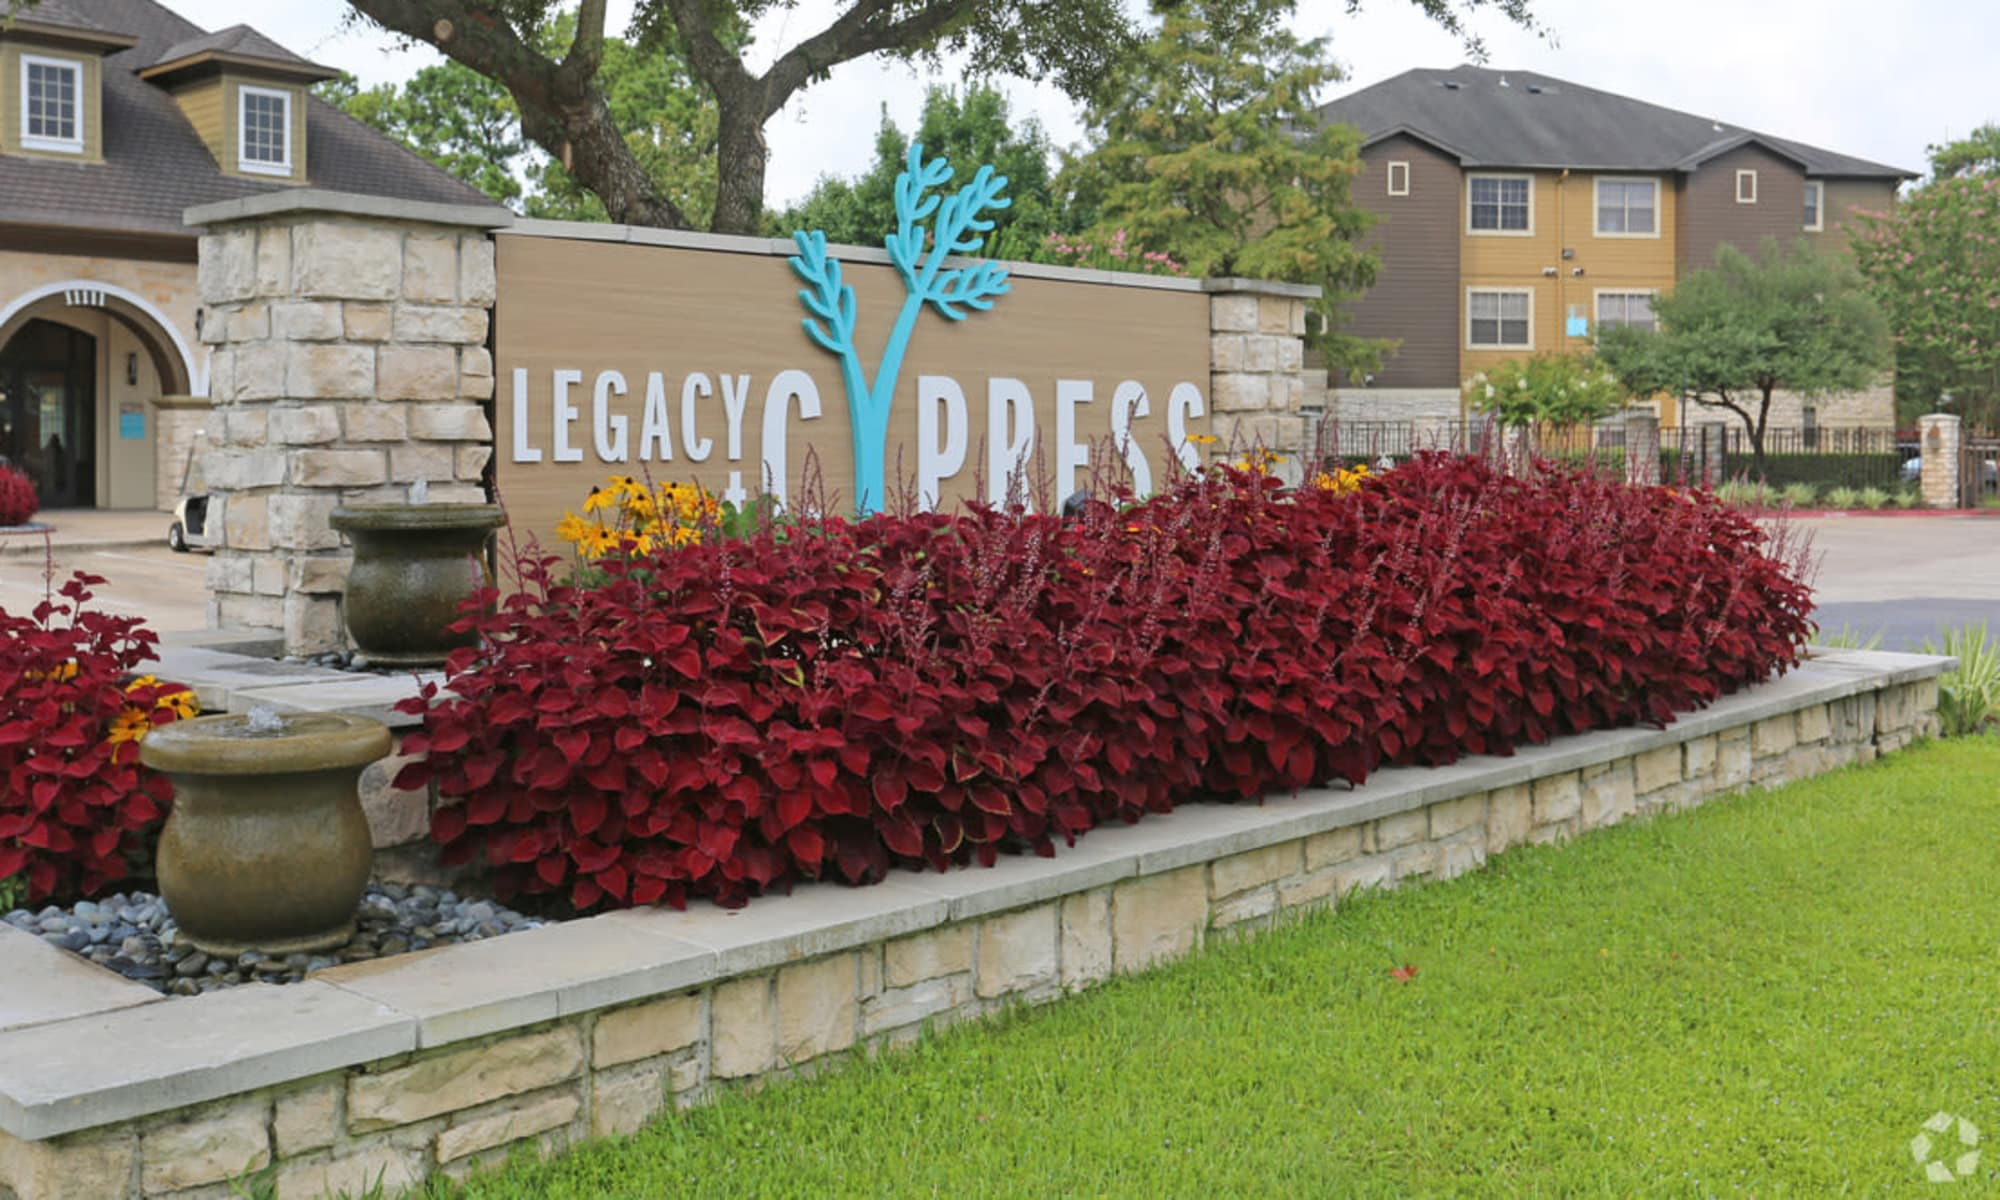 Apartments at Legacy at Cypress in Cypress, Texas